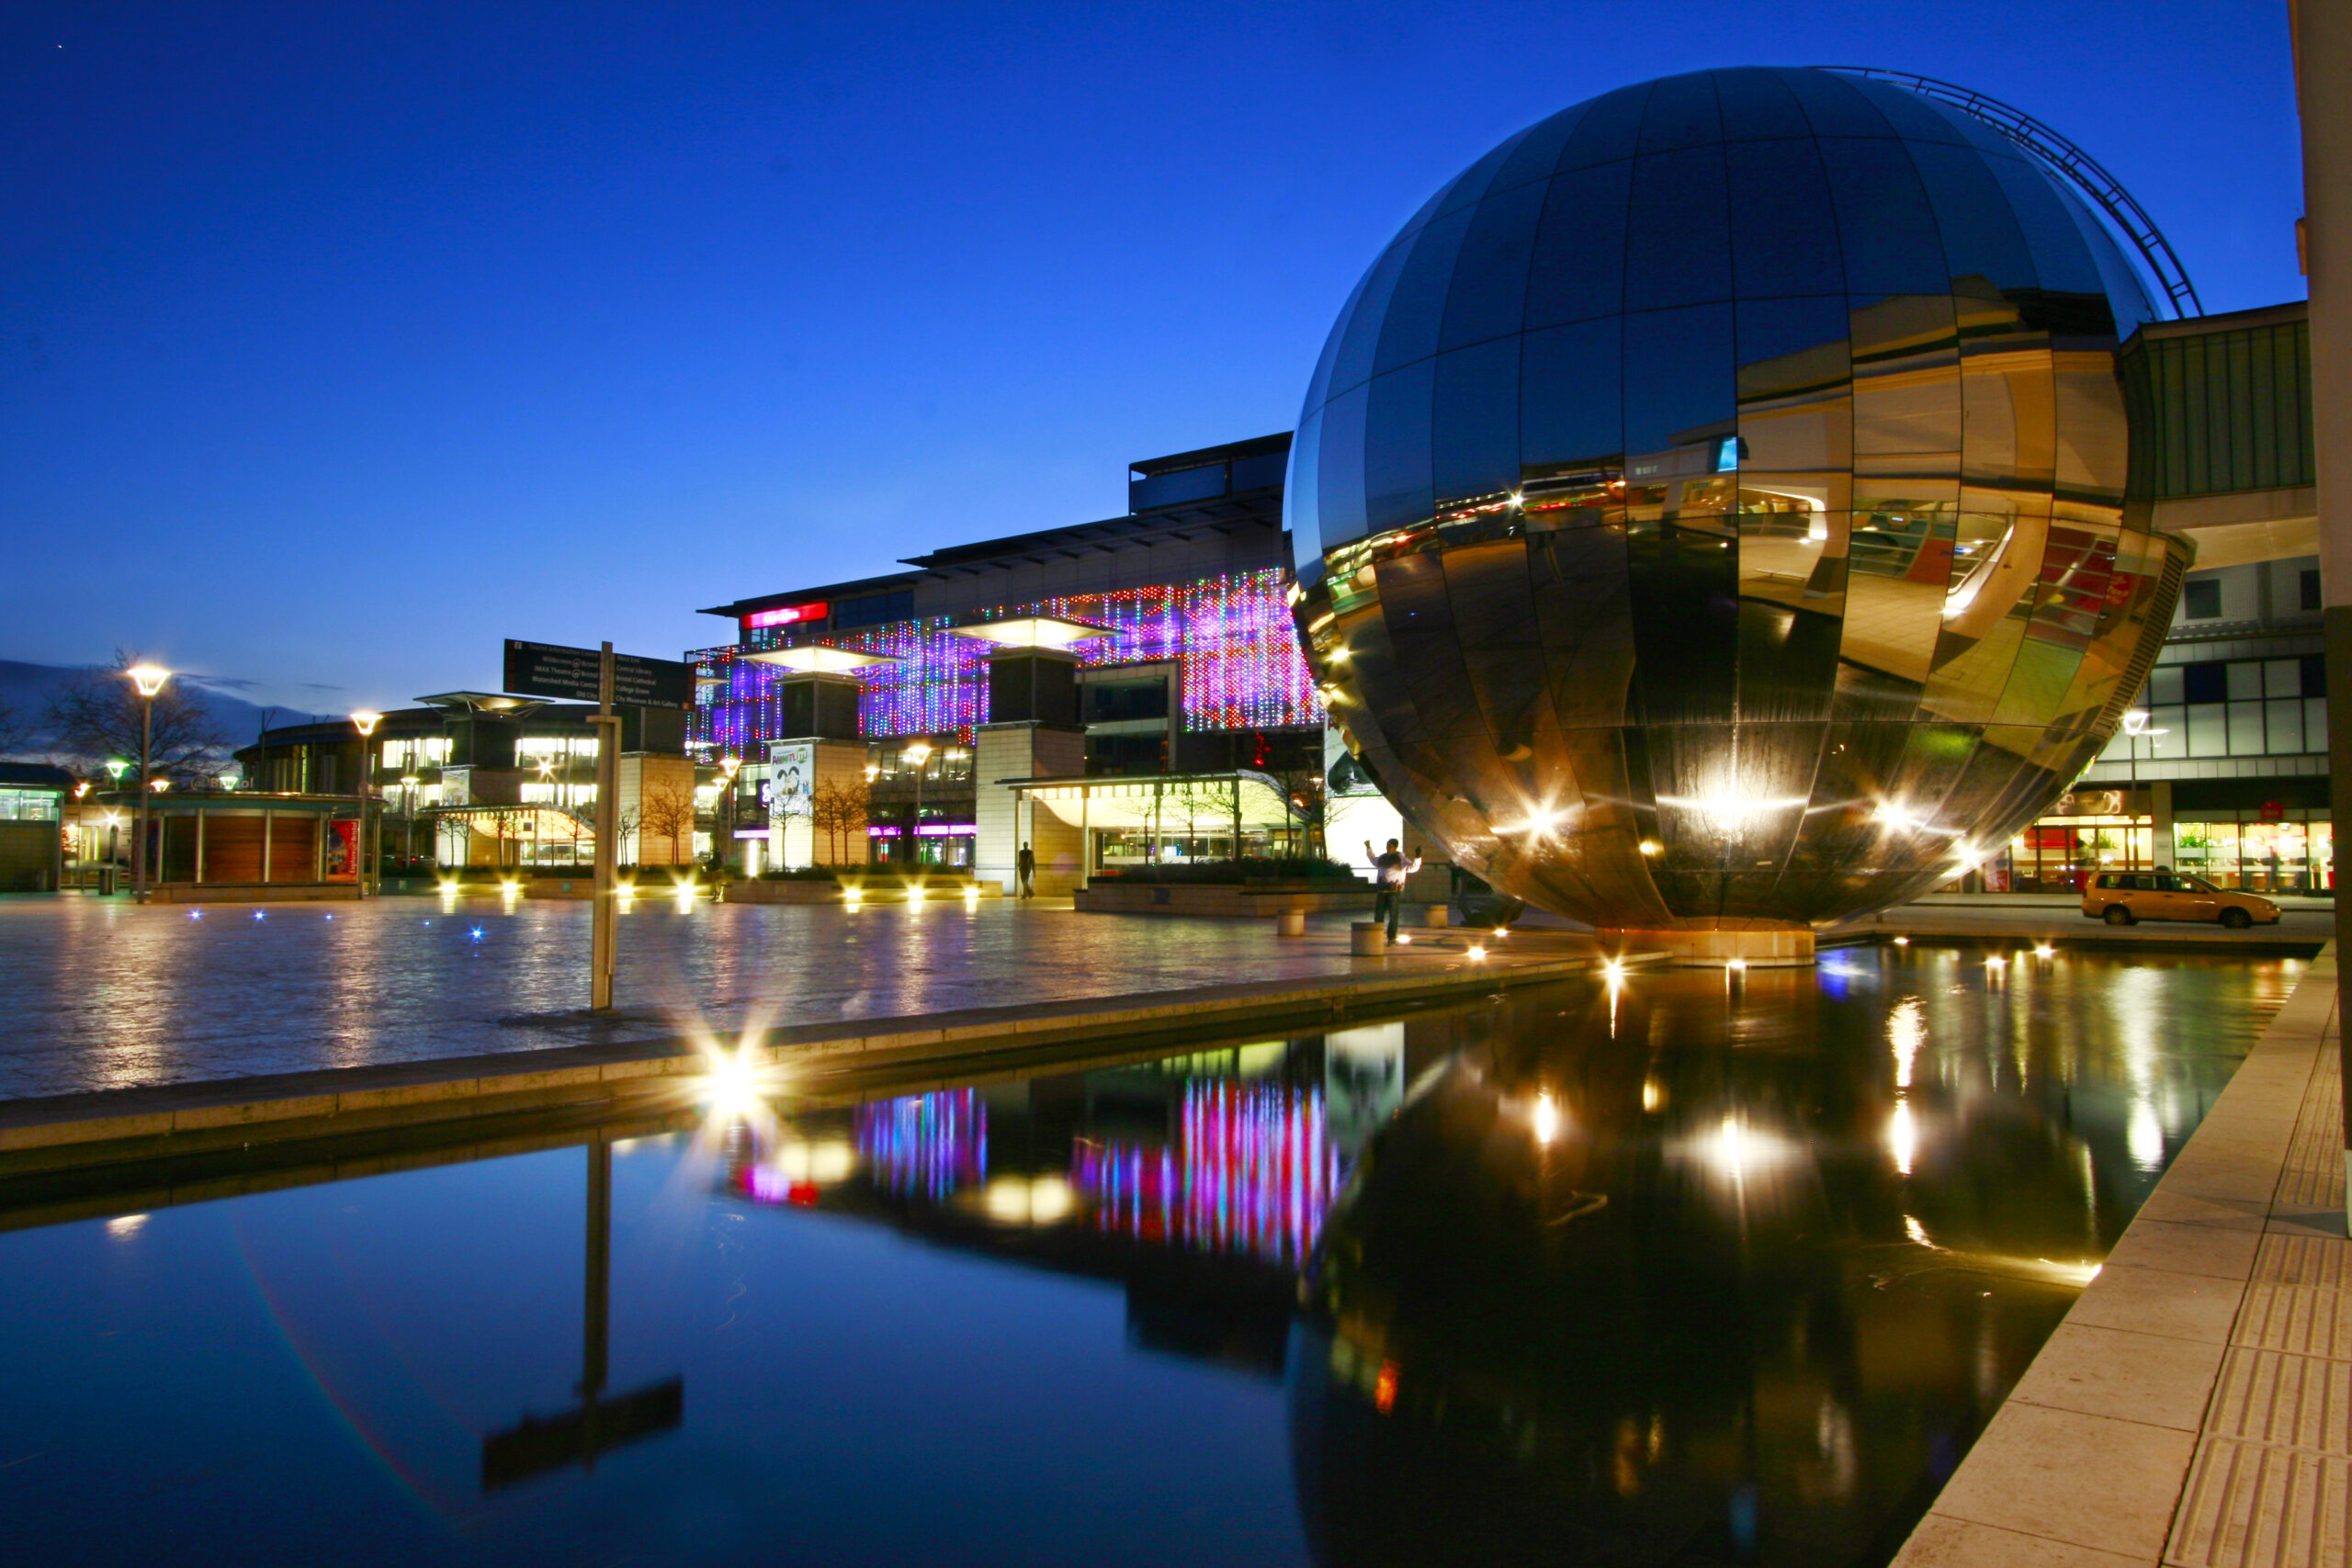 Bristol Harbourside - Exterior and Interior Lighting for Buildings